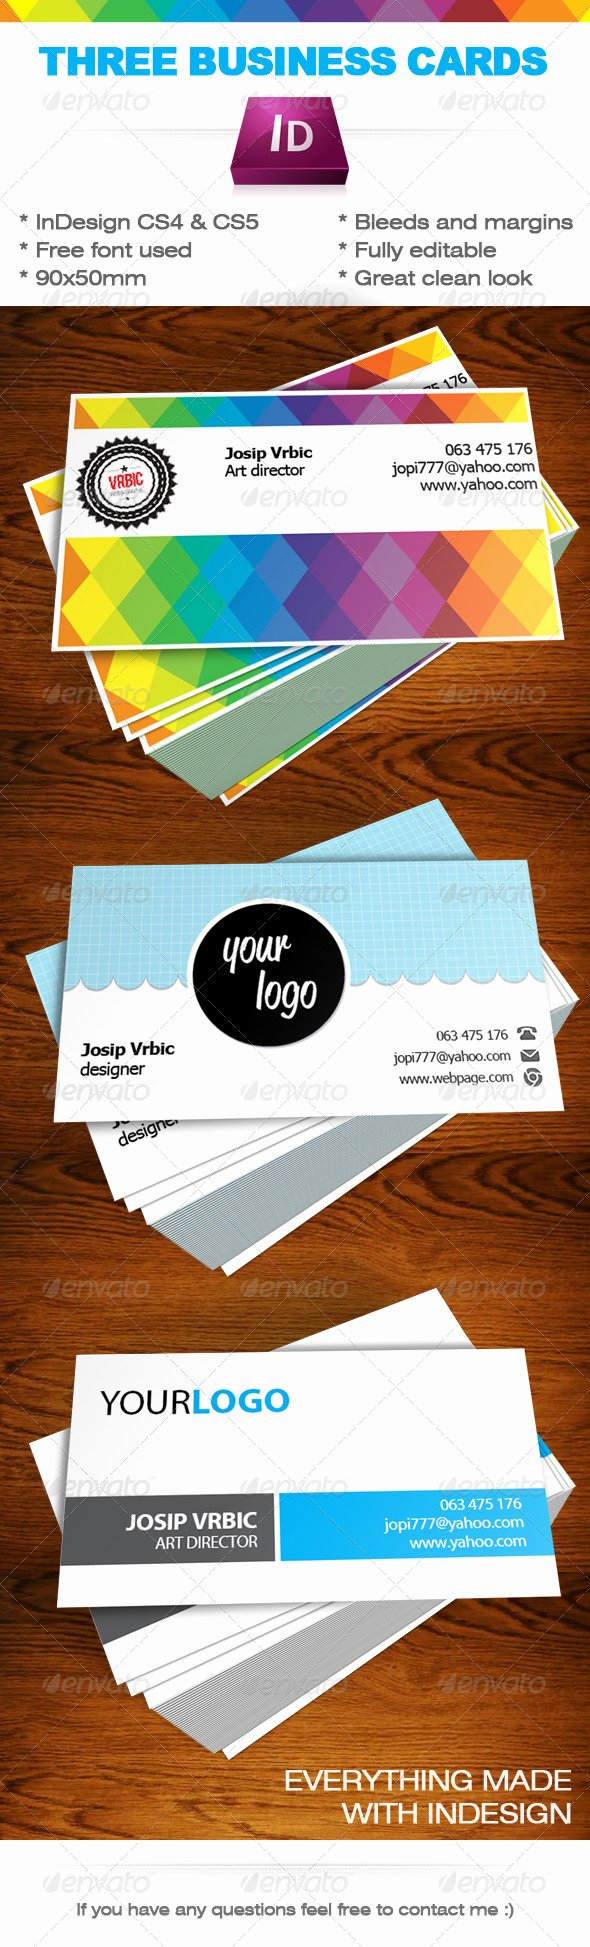 Indesign Business Card Template Free Beautiful Business Cards Indesign Templates